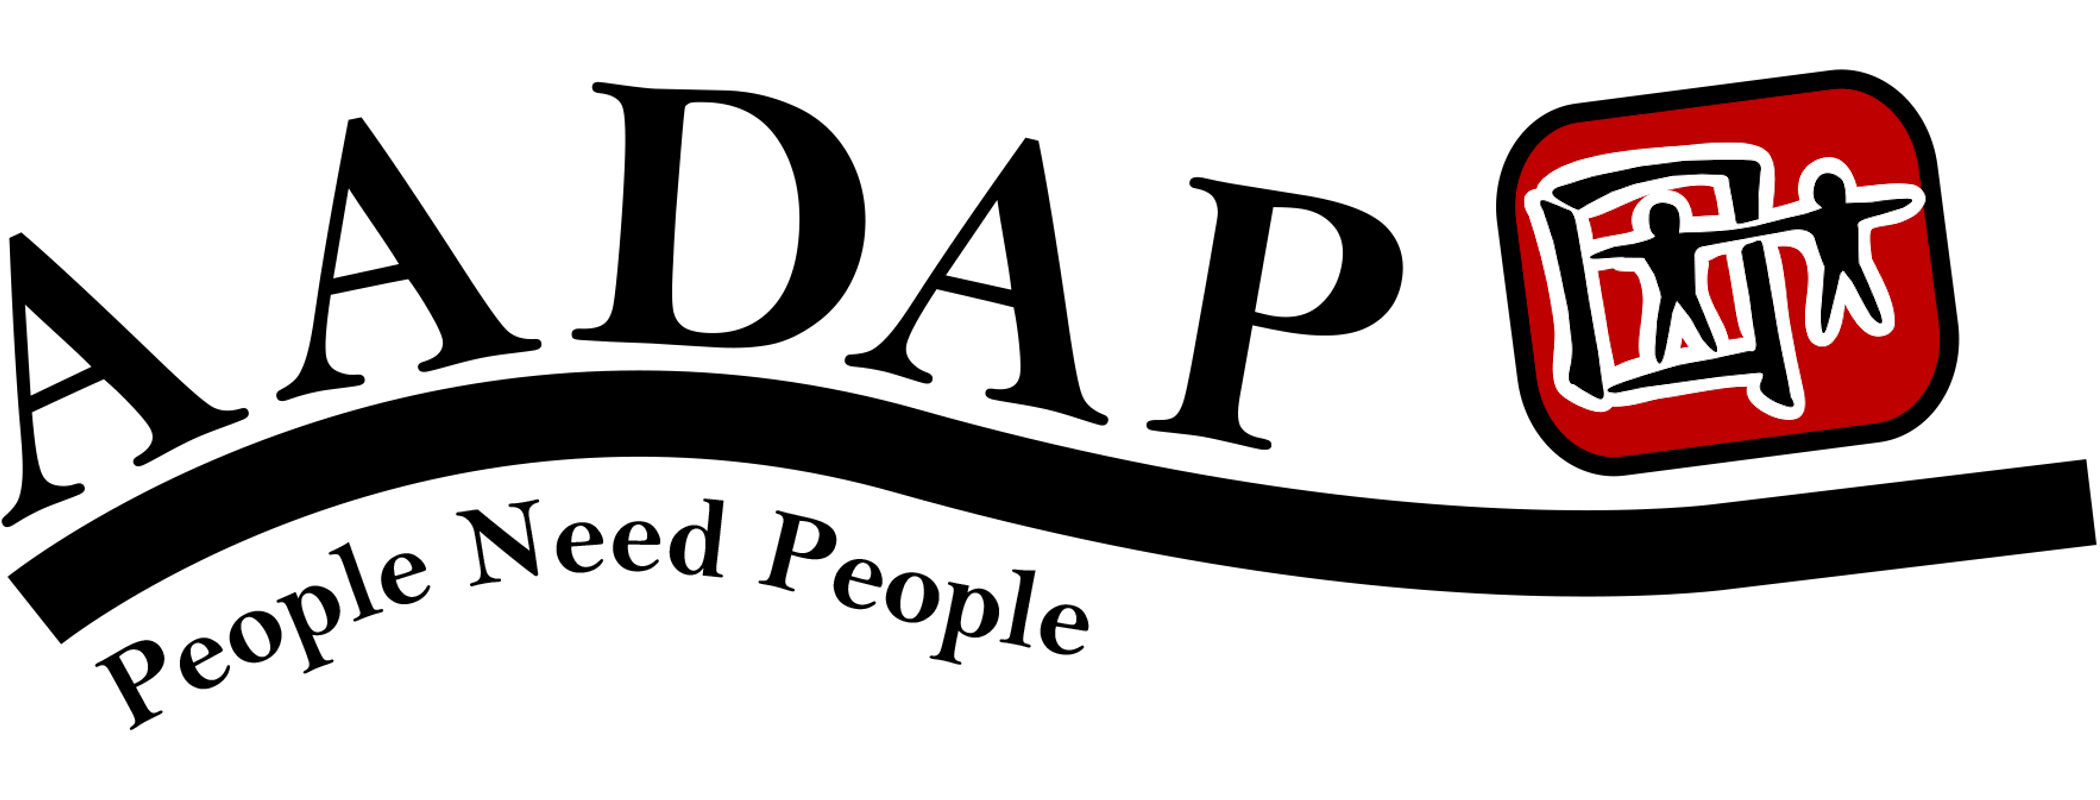 - Asian American Drug Abuse Program2900 S. Crenshaw Blvd.Los Angeles 90016(323) 293-6284 | aadapinc.org